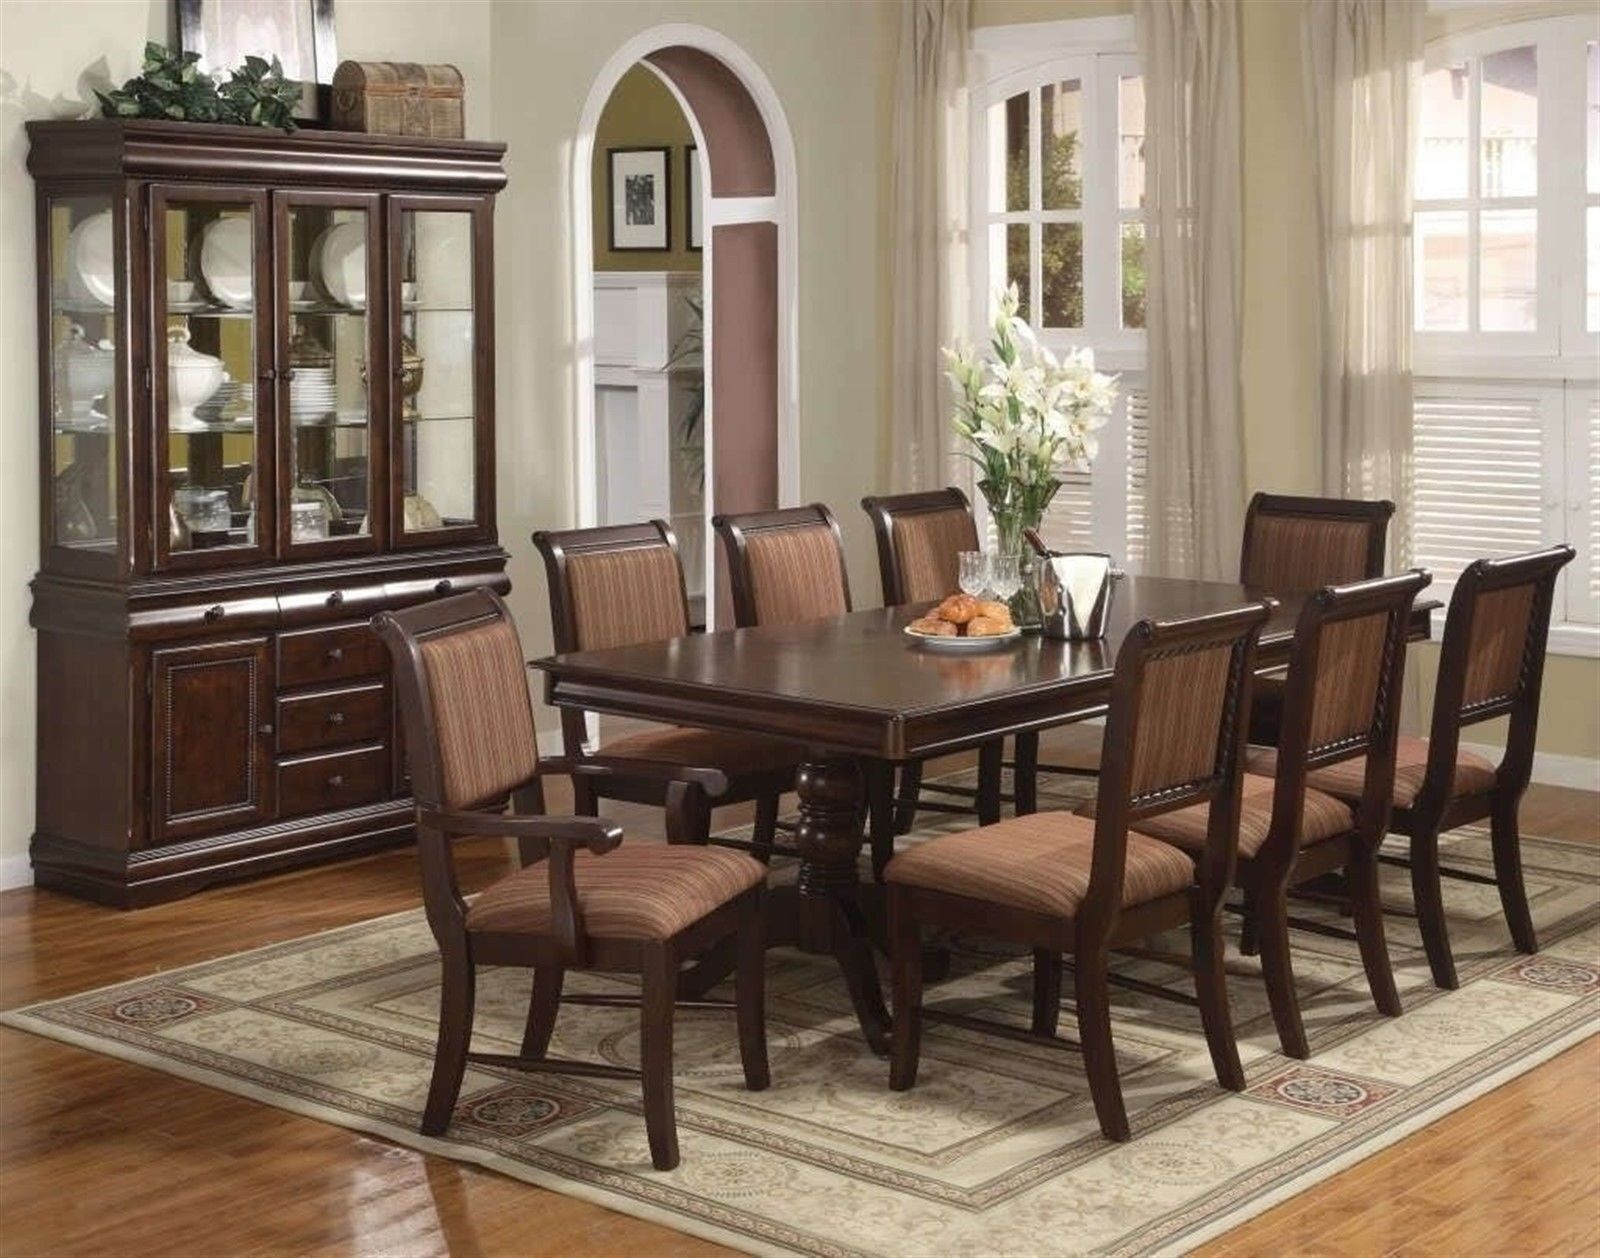 Picture of: Merlot 9 Piece Formal Dining Room Furniture Set Pedestal Table 8 Chairs Ebay